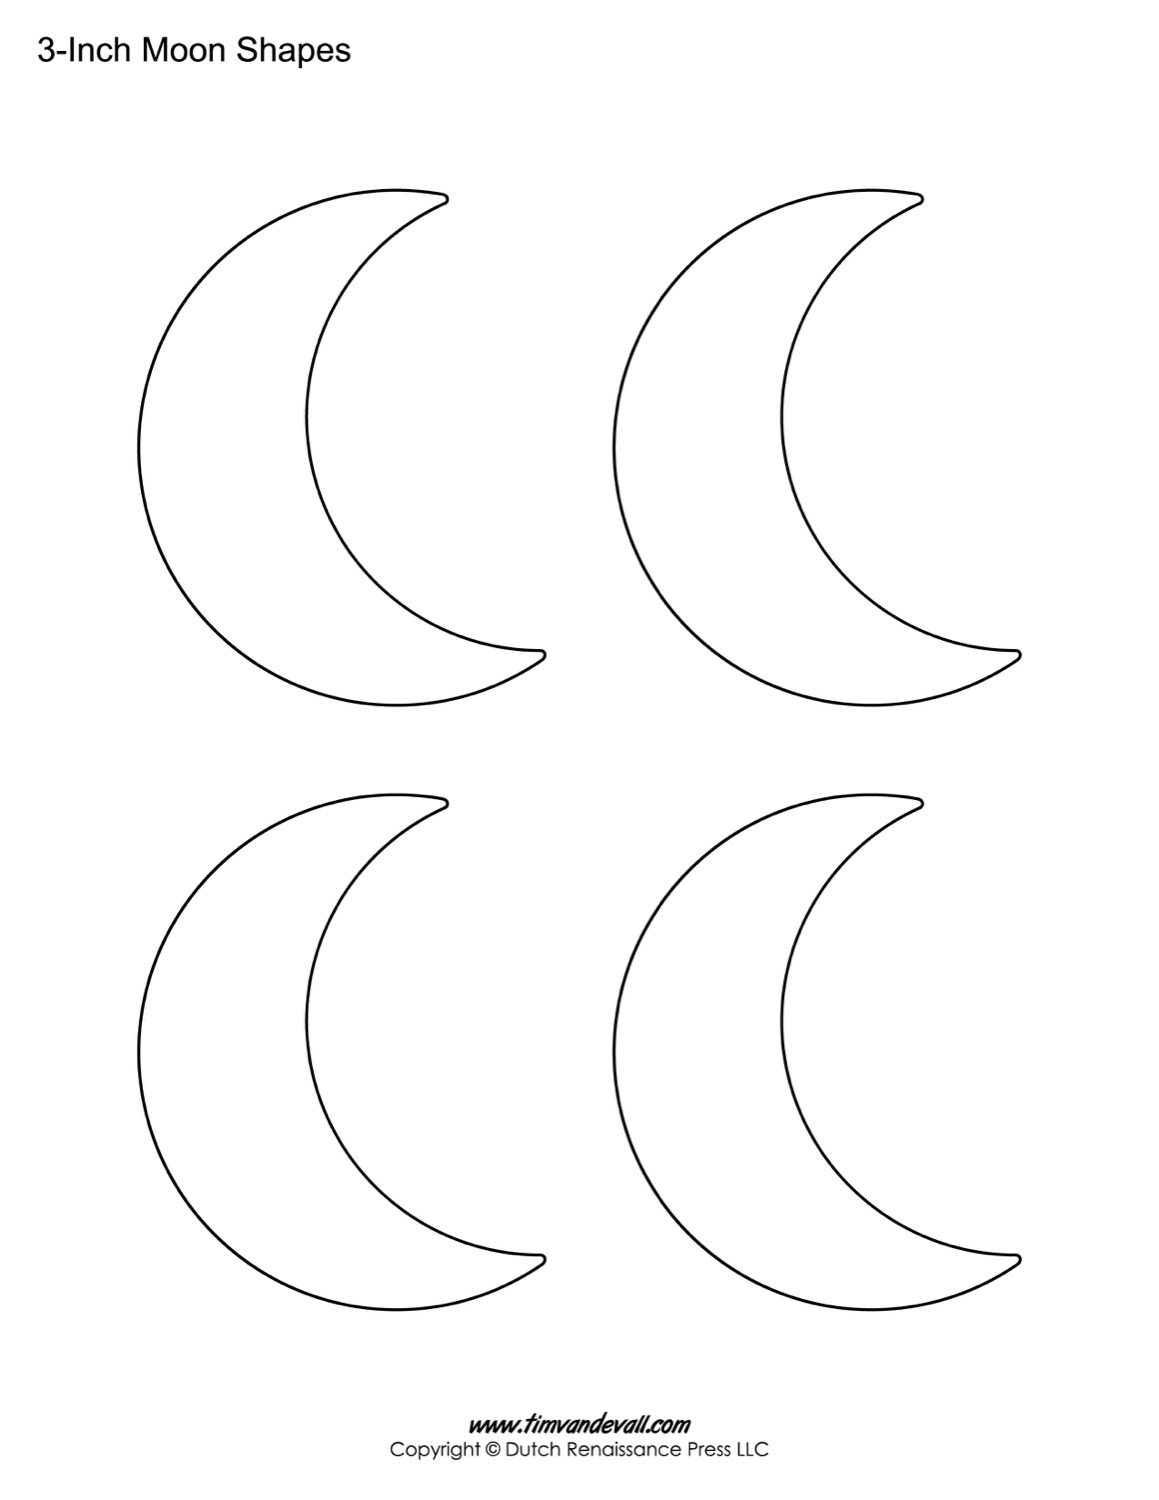 Blank Moon Templates Printable